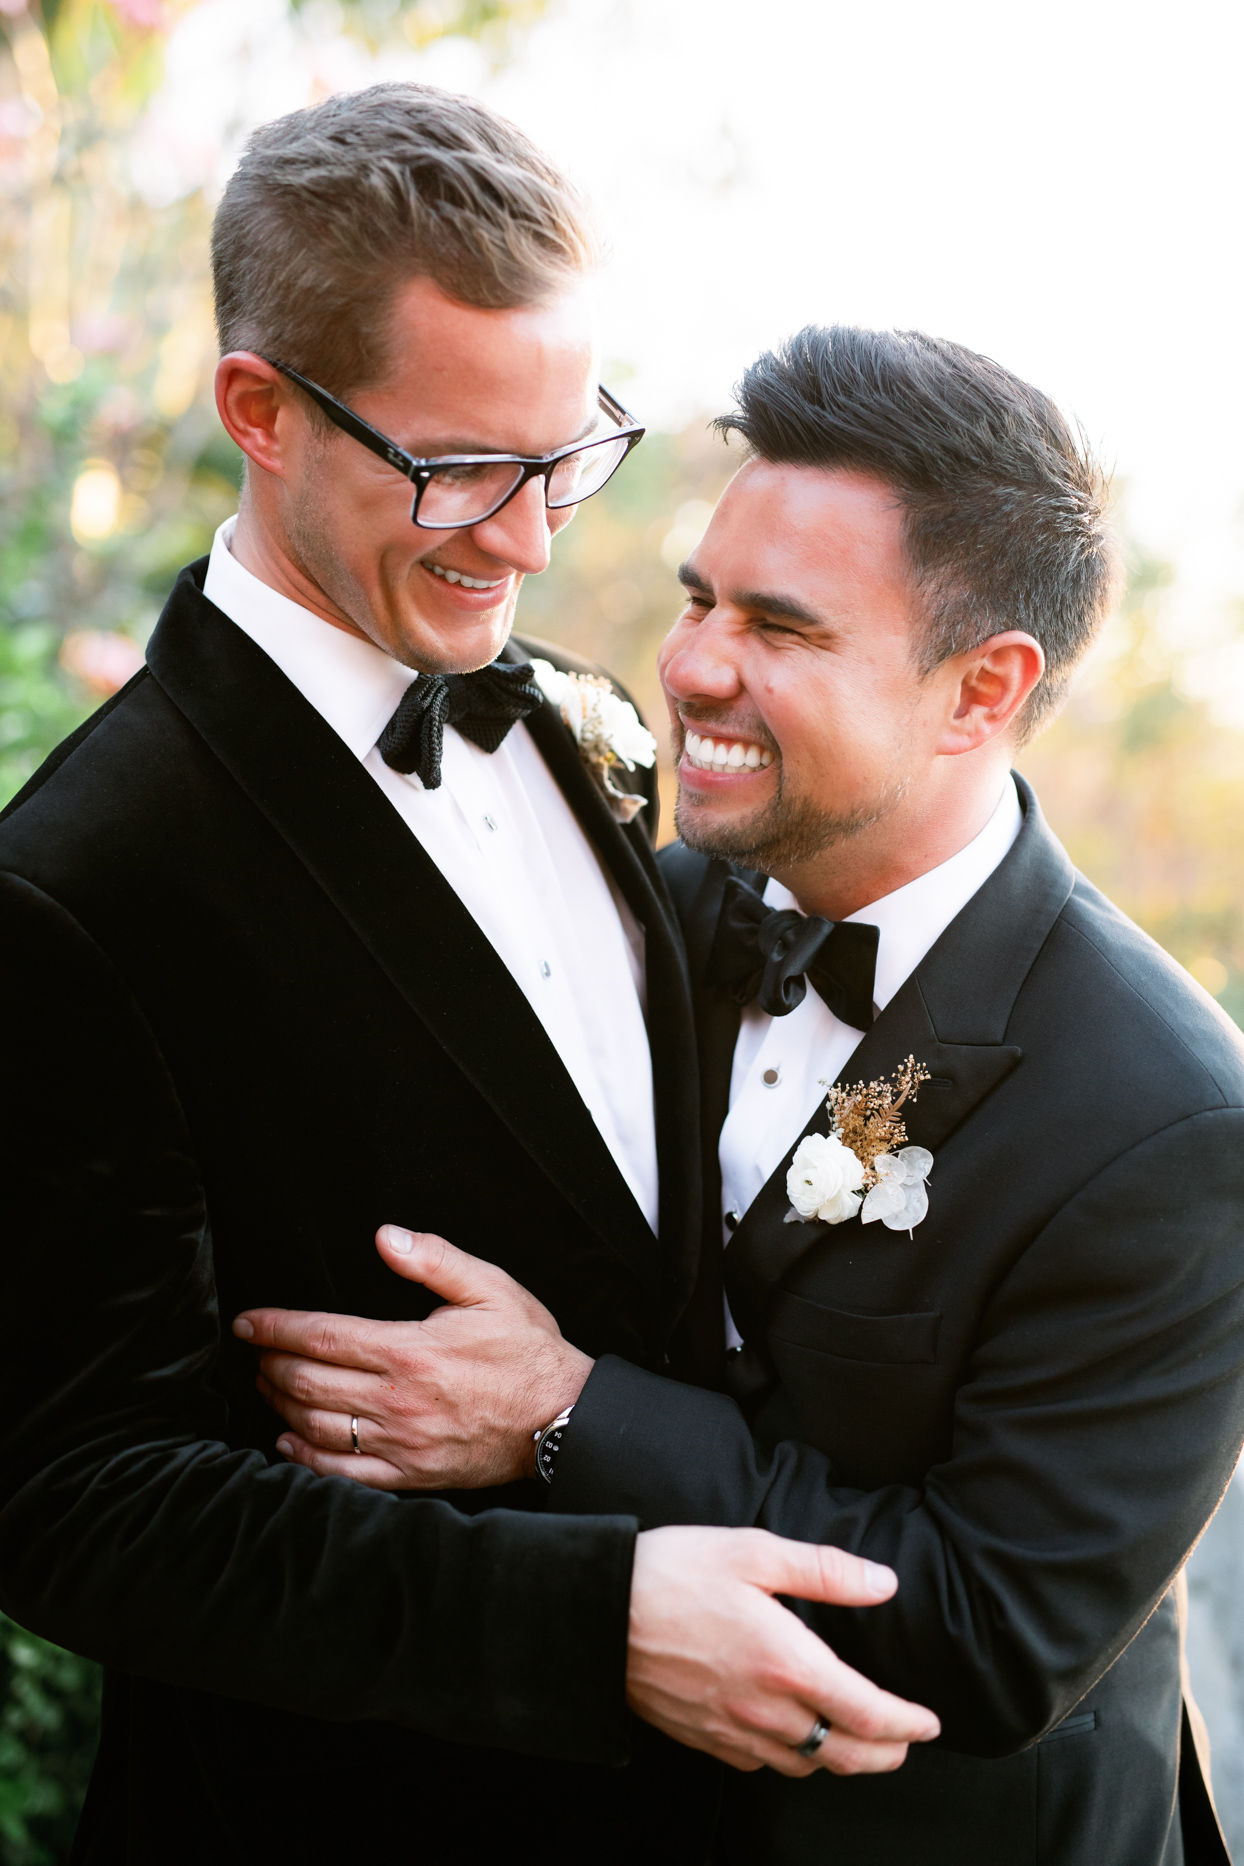 close up couple portrait in black suits laughing